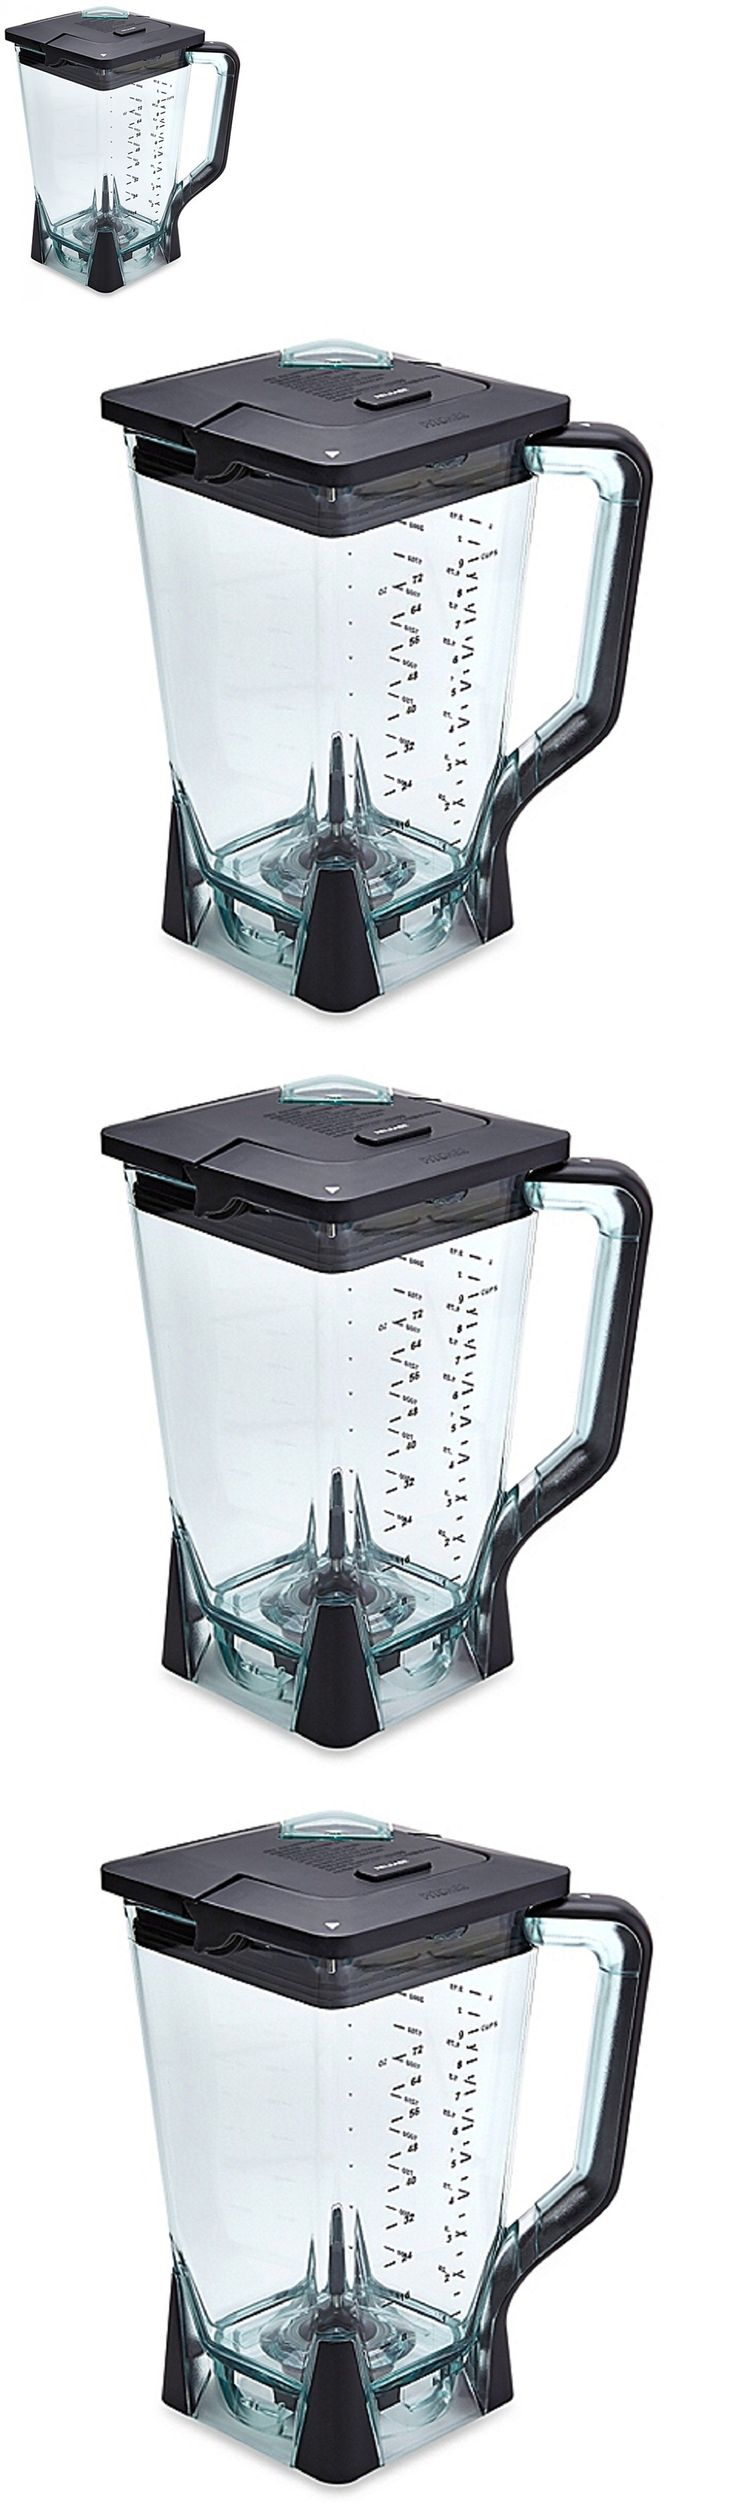 Blenders Countertop 133704: Ninja 72-Ounce Pitcher With Lid Replacement For Bl660 Professional Blender New -> BUY IT NOW ONLY: $44.76 on eBay!